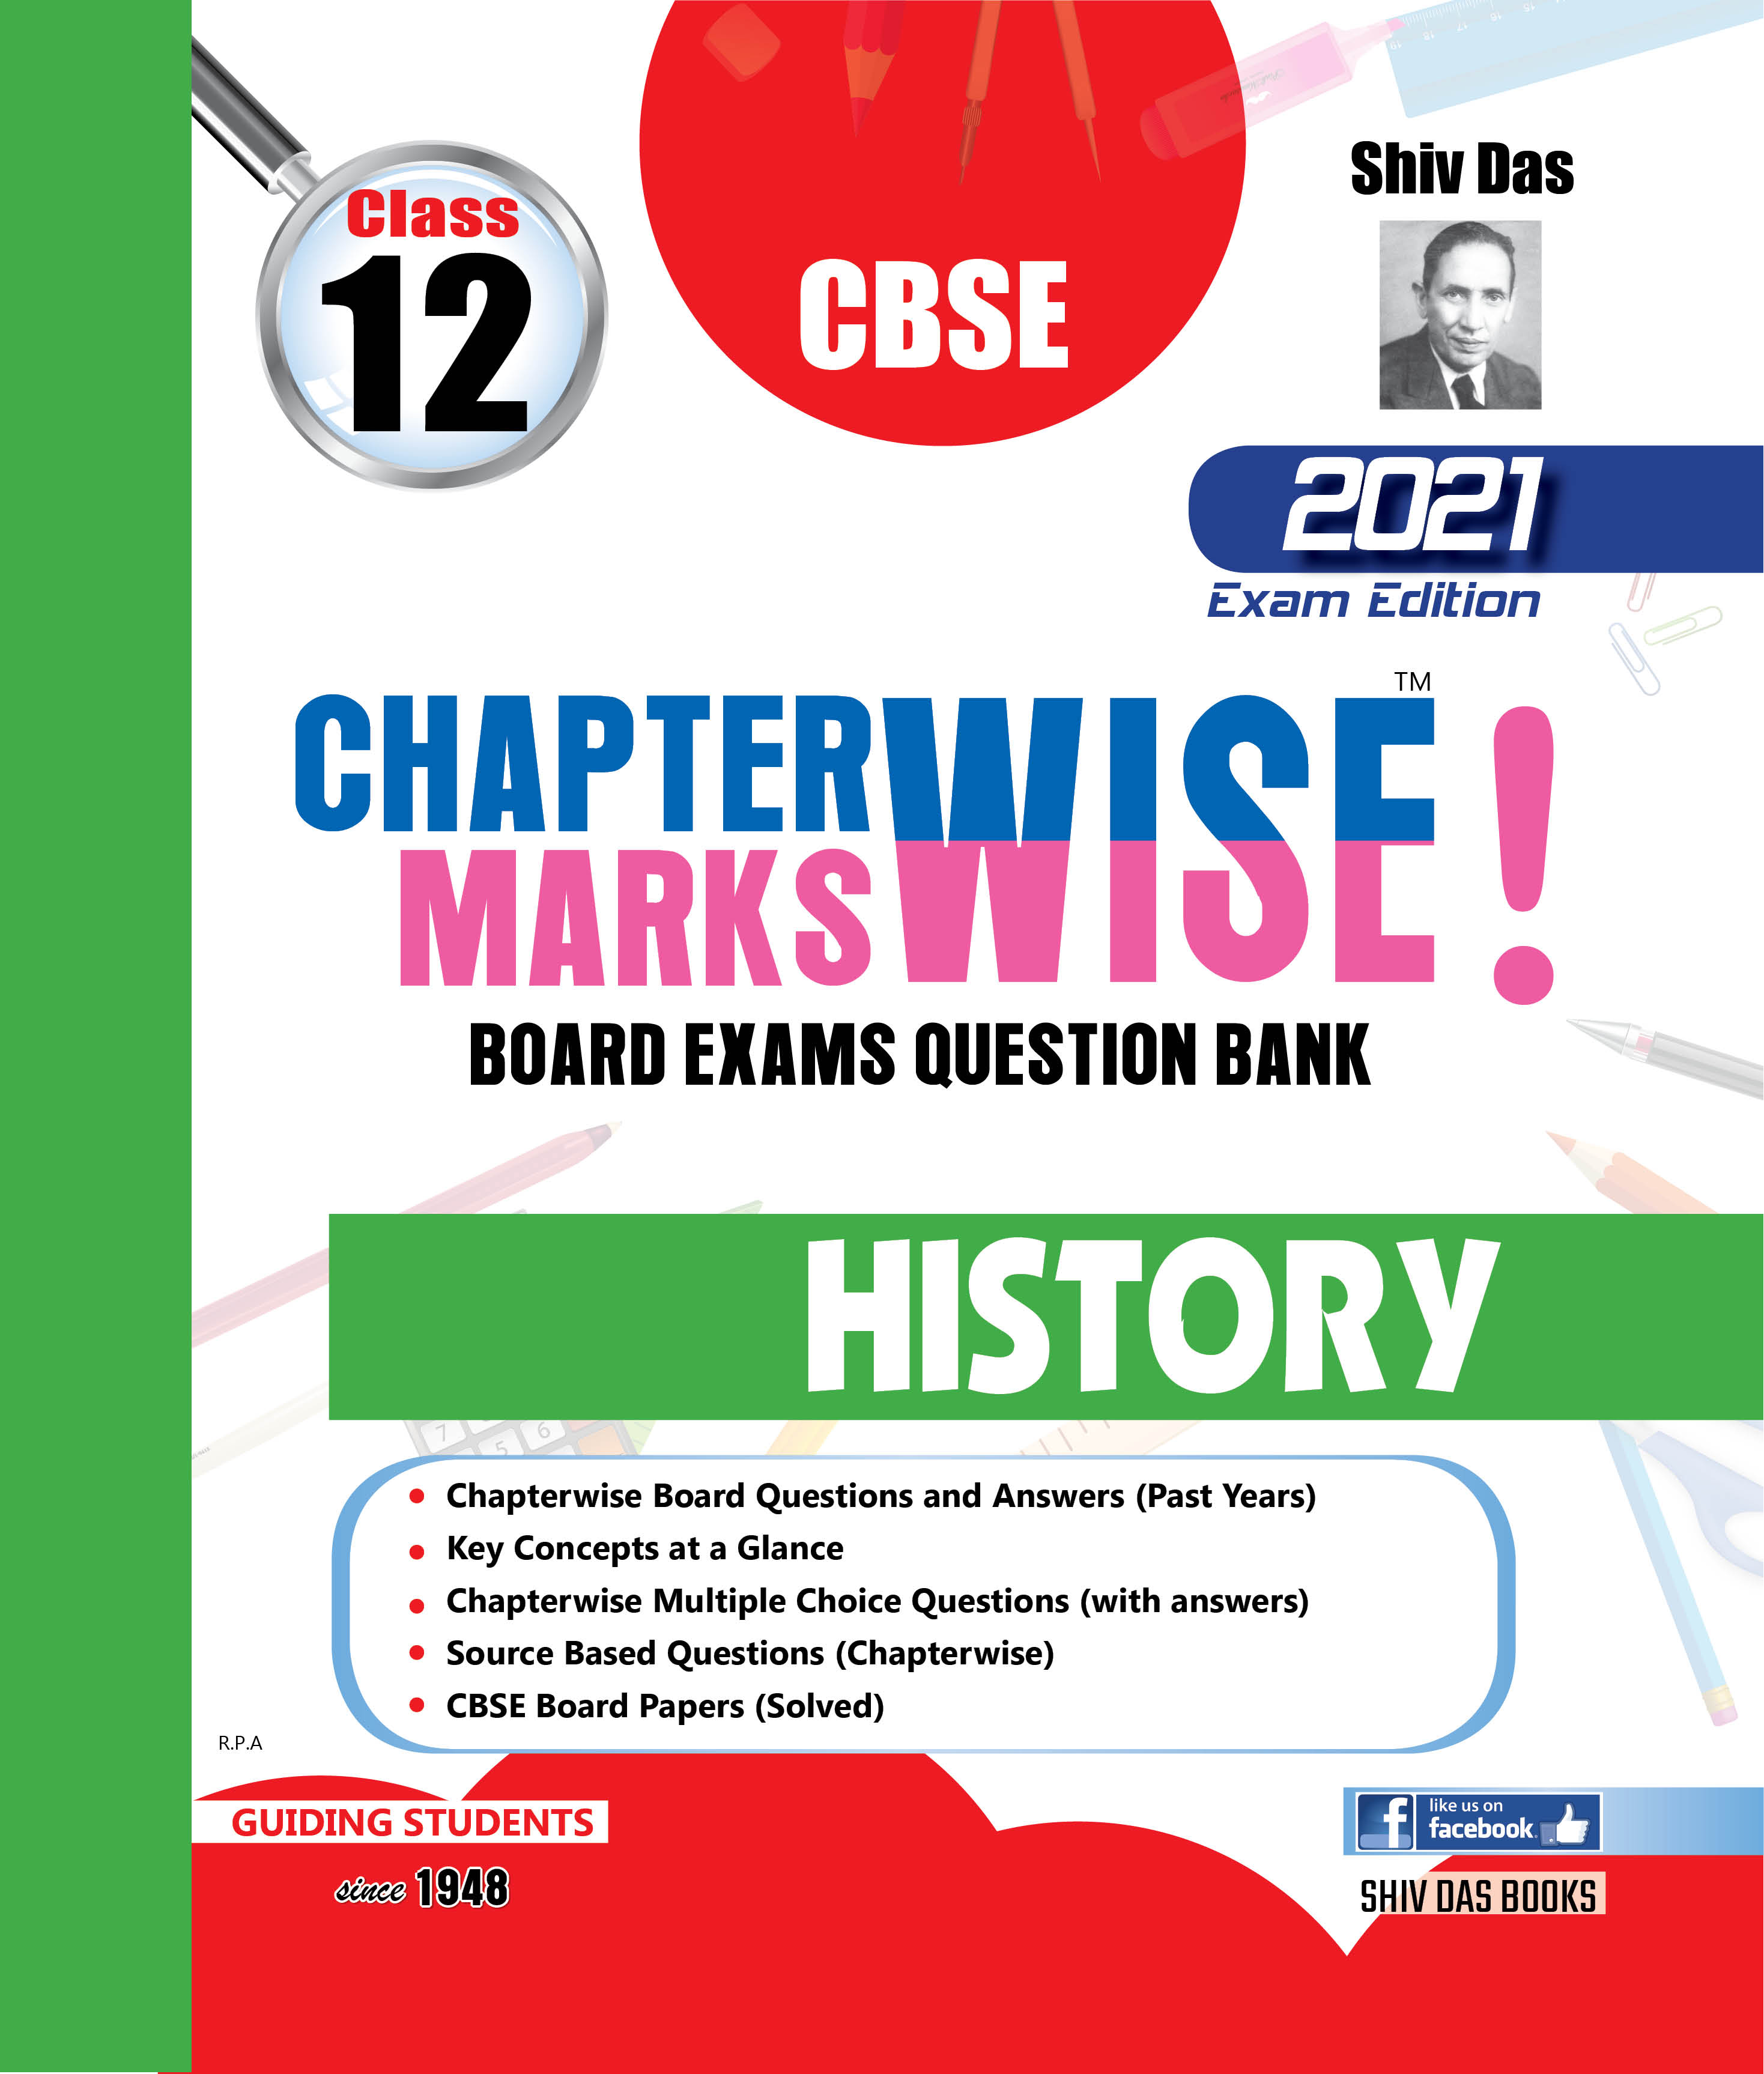 CBSE Chapterwise Markswise Yearwise Board Exam Questions Bank For Class 12 History (2021 Board Exam Edition)